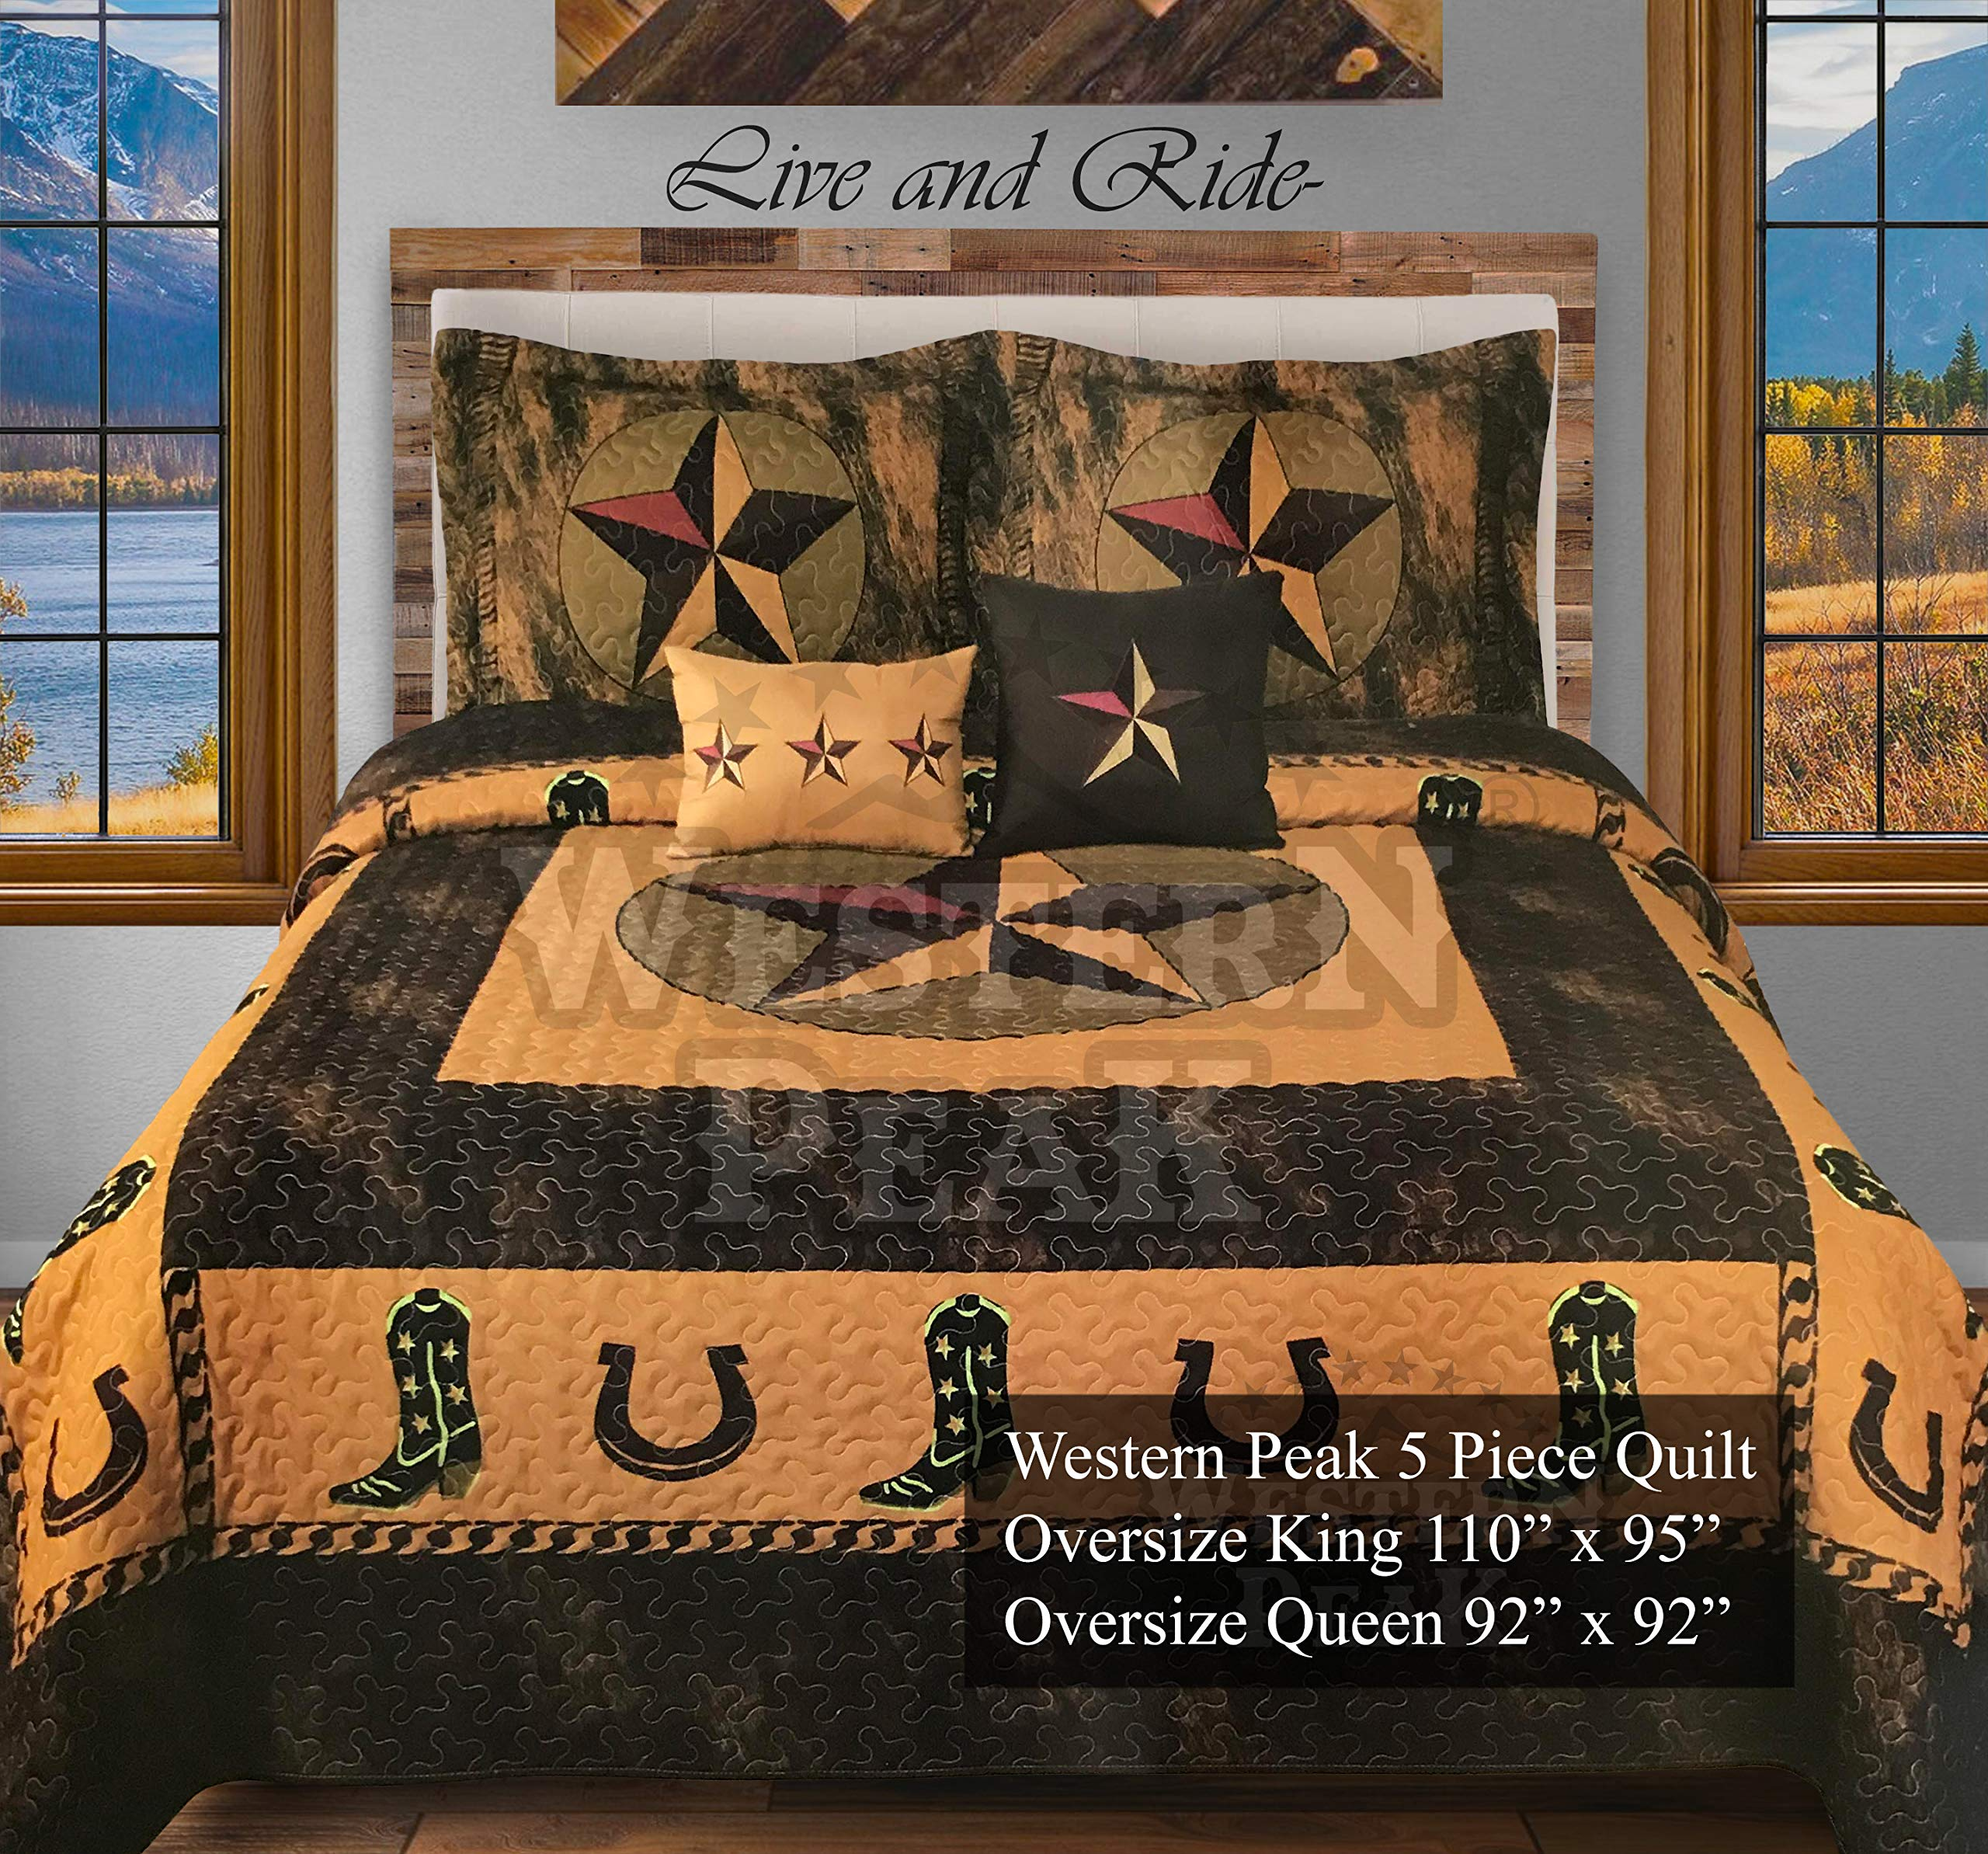 Western Peak 5 Pc Western Texas Cross Lodge Barbed Wire Quilt Bedspread Shams Pillow Oversize Comforter (Gold Cowboy Star, King) by Western Peak (Image #1)